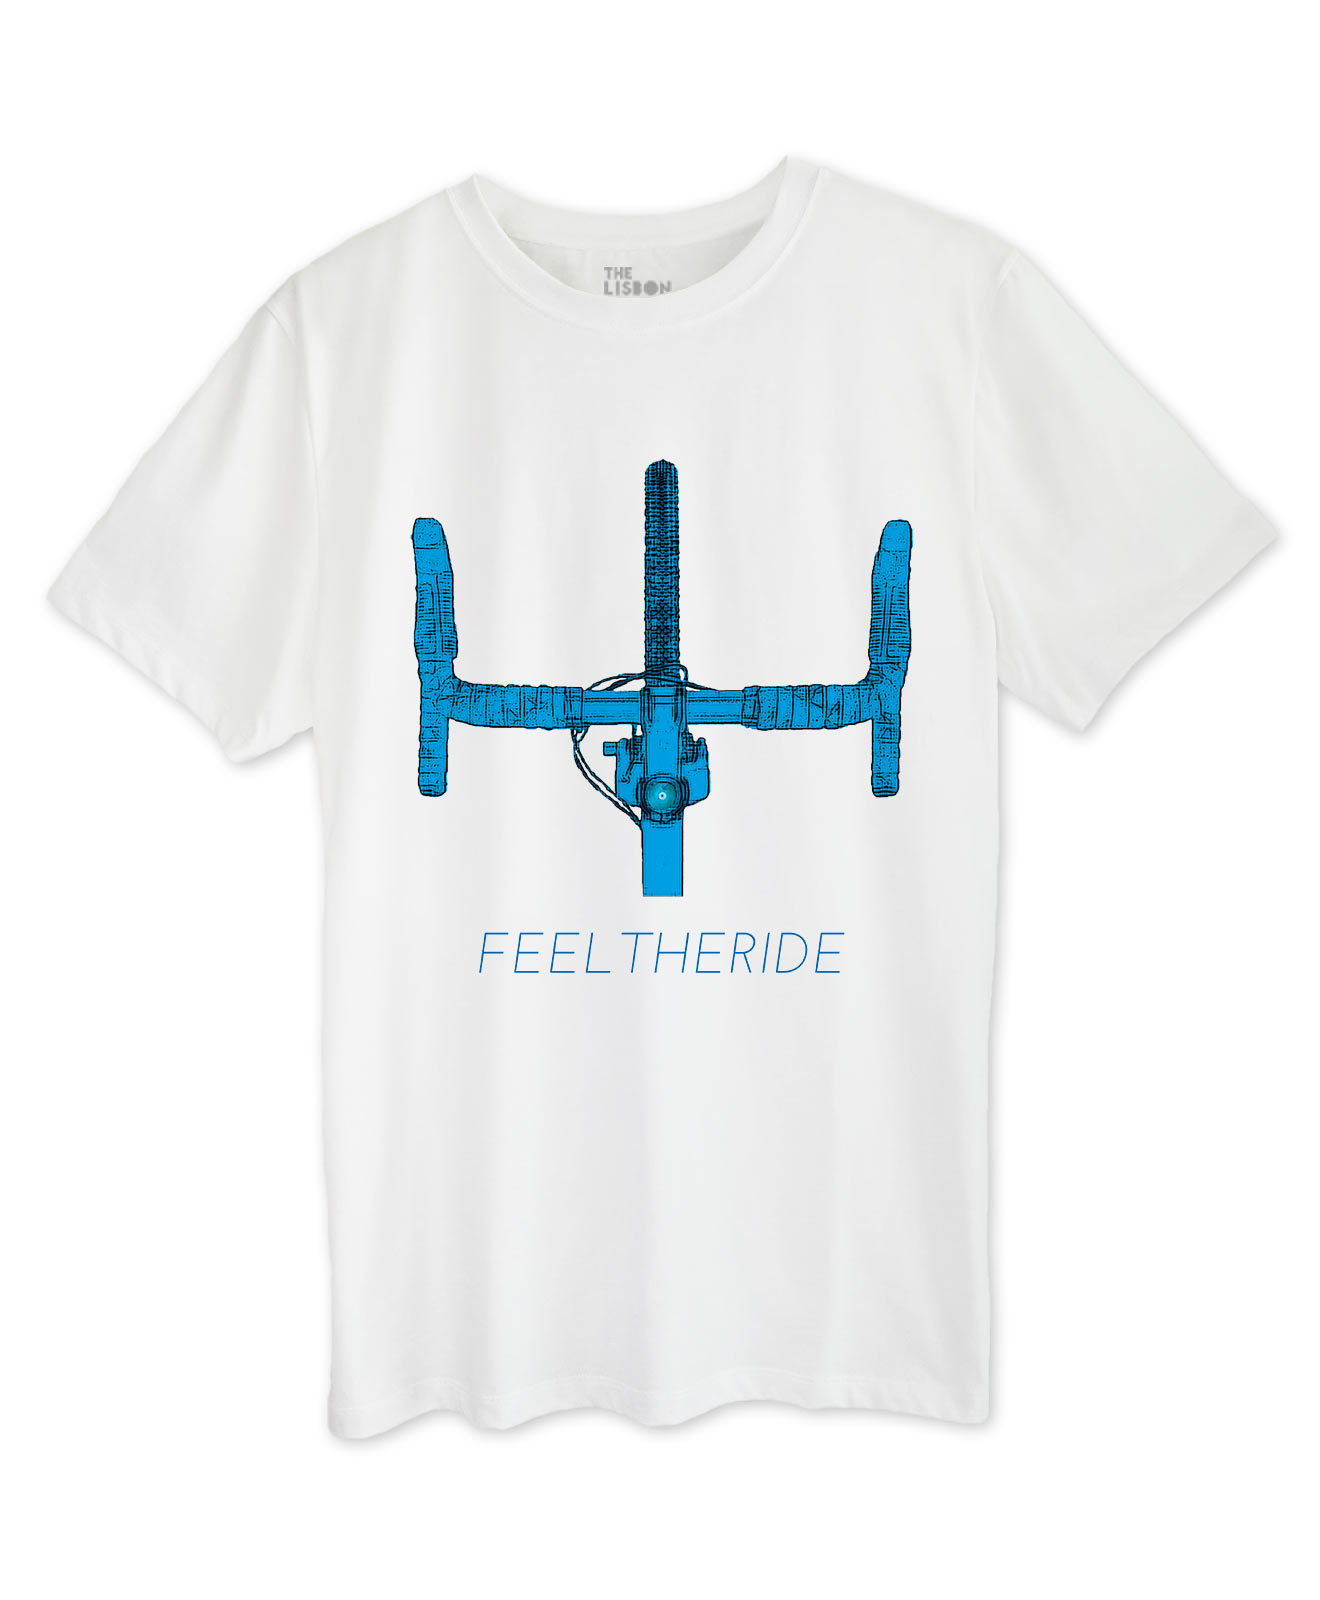 Road Bike Handlebar White T-shirt blue printing